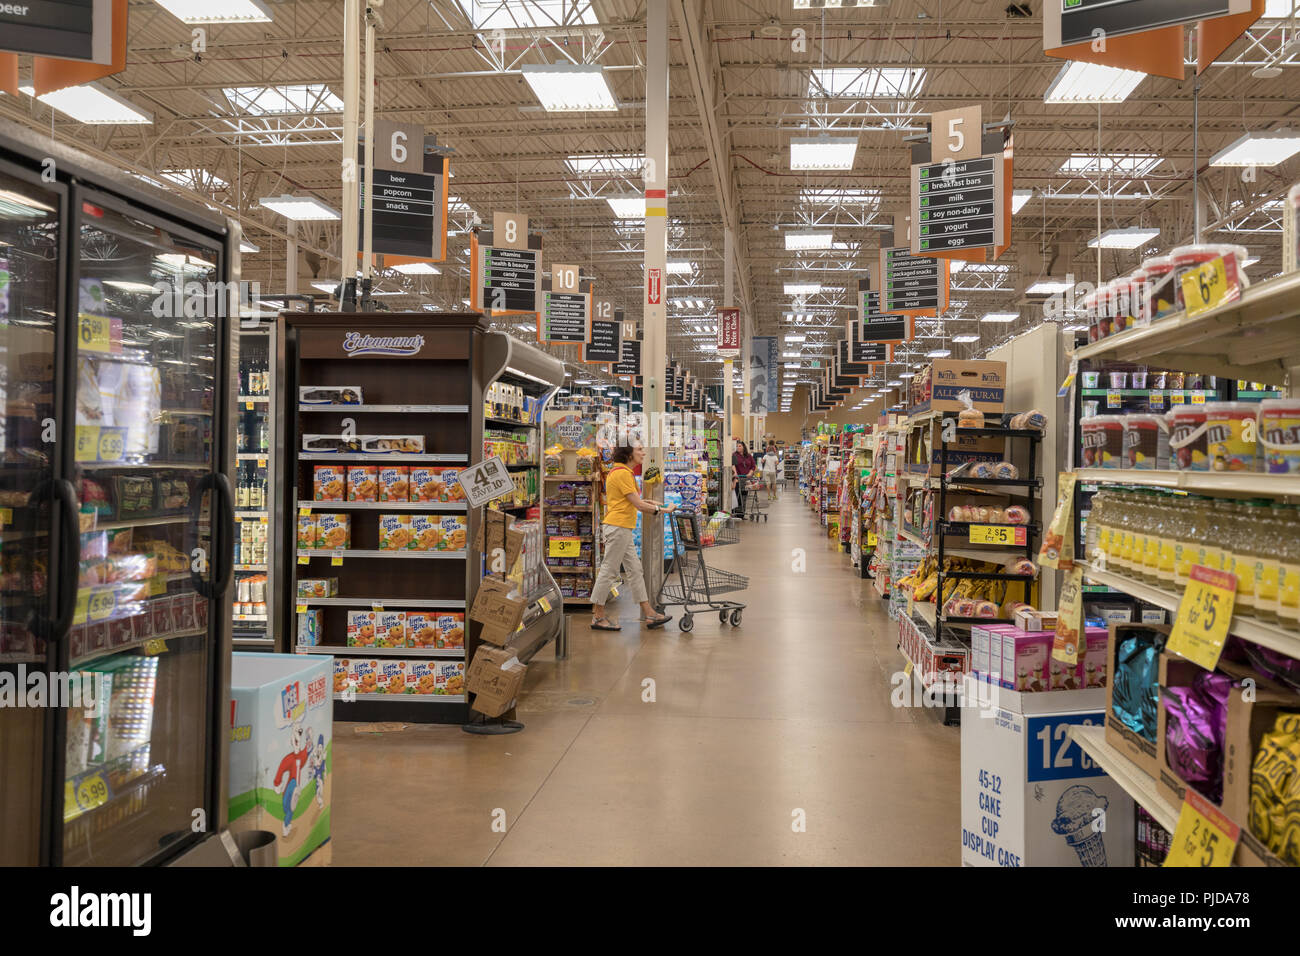 Fred Meyer Stock Photos & Fred Meyer Stock Images - Alamy